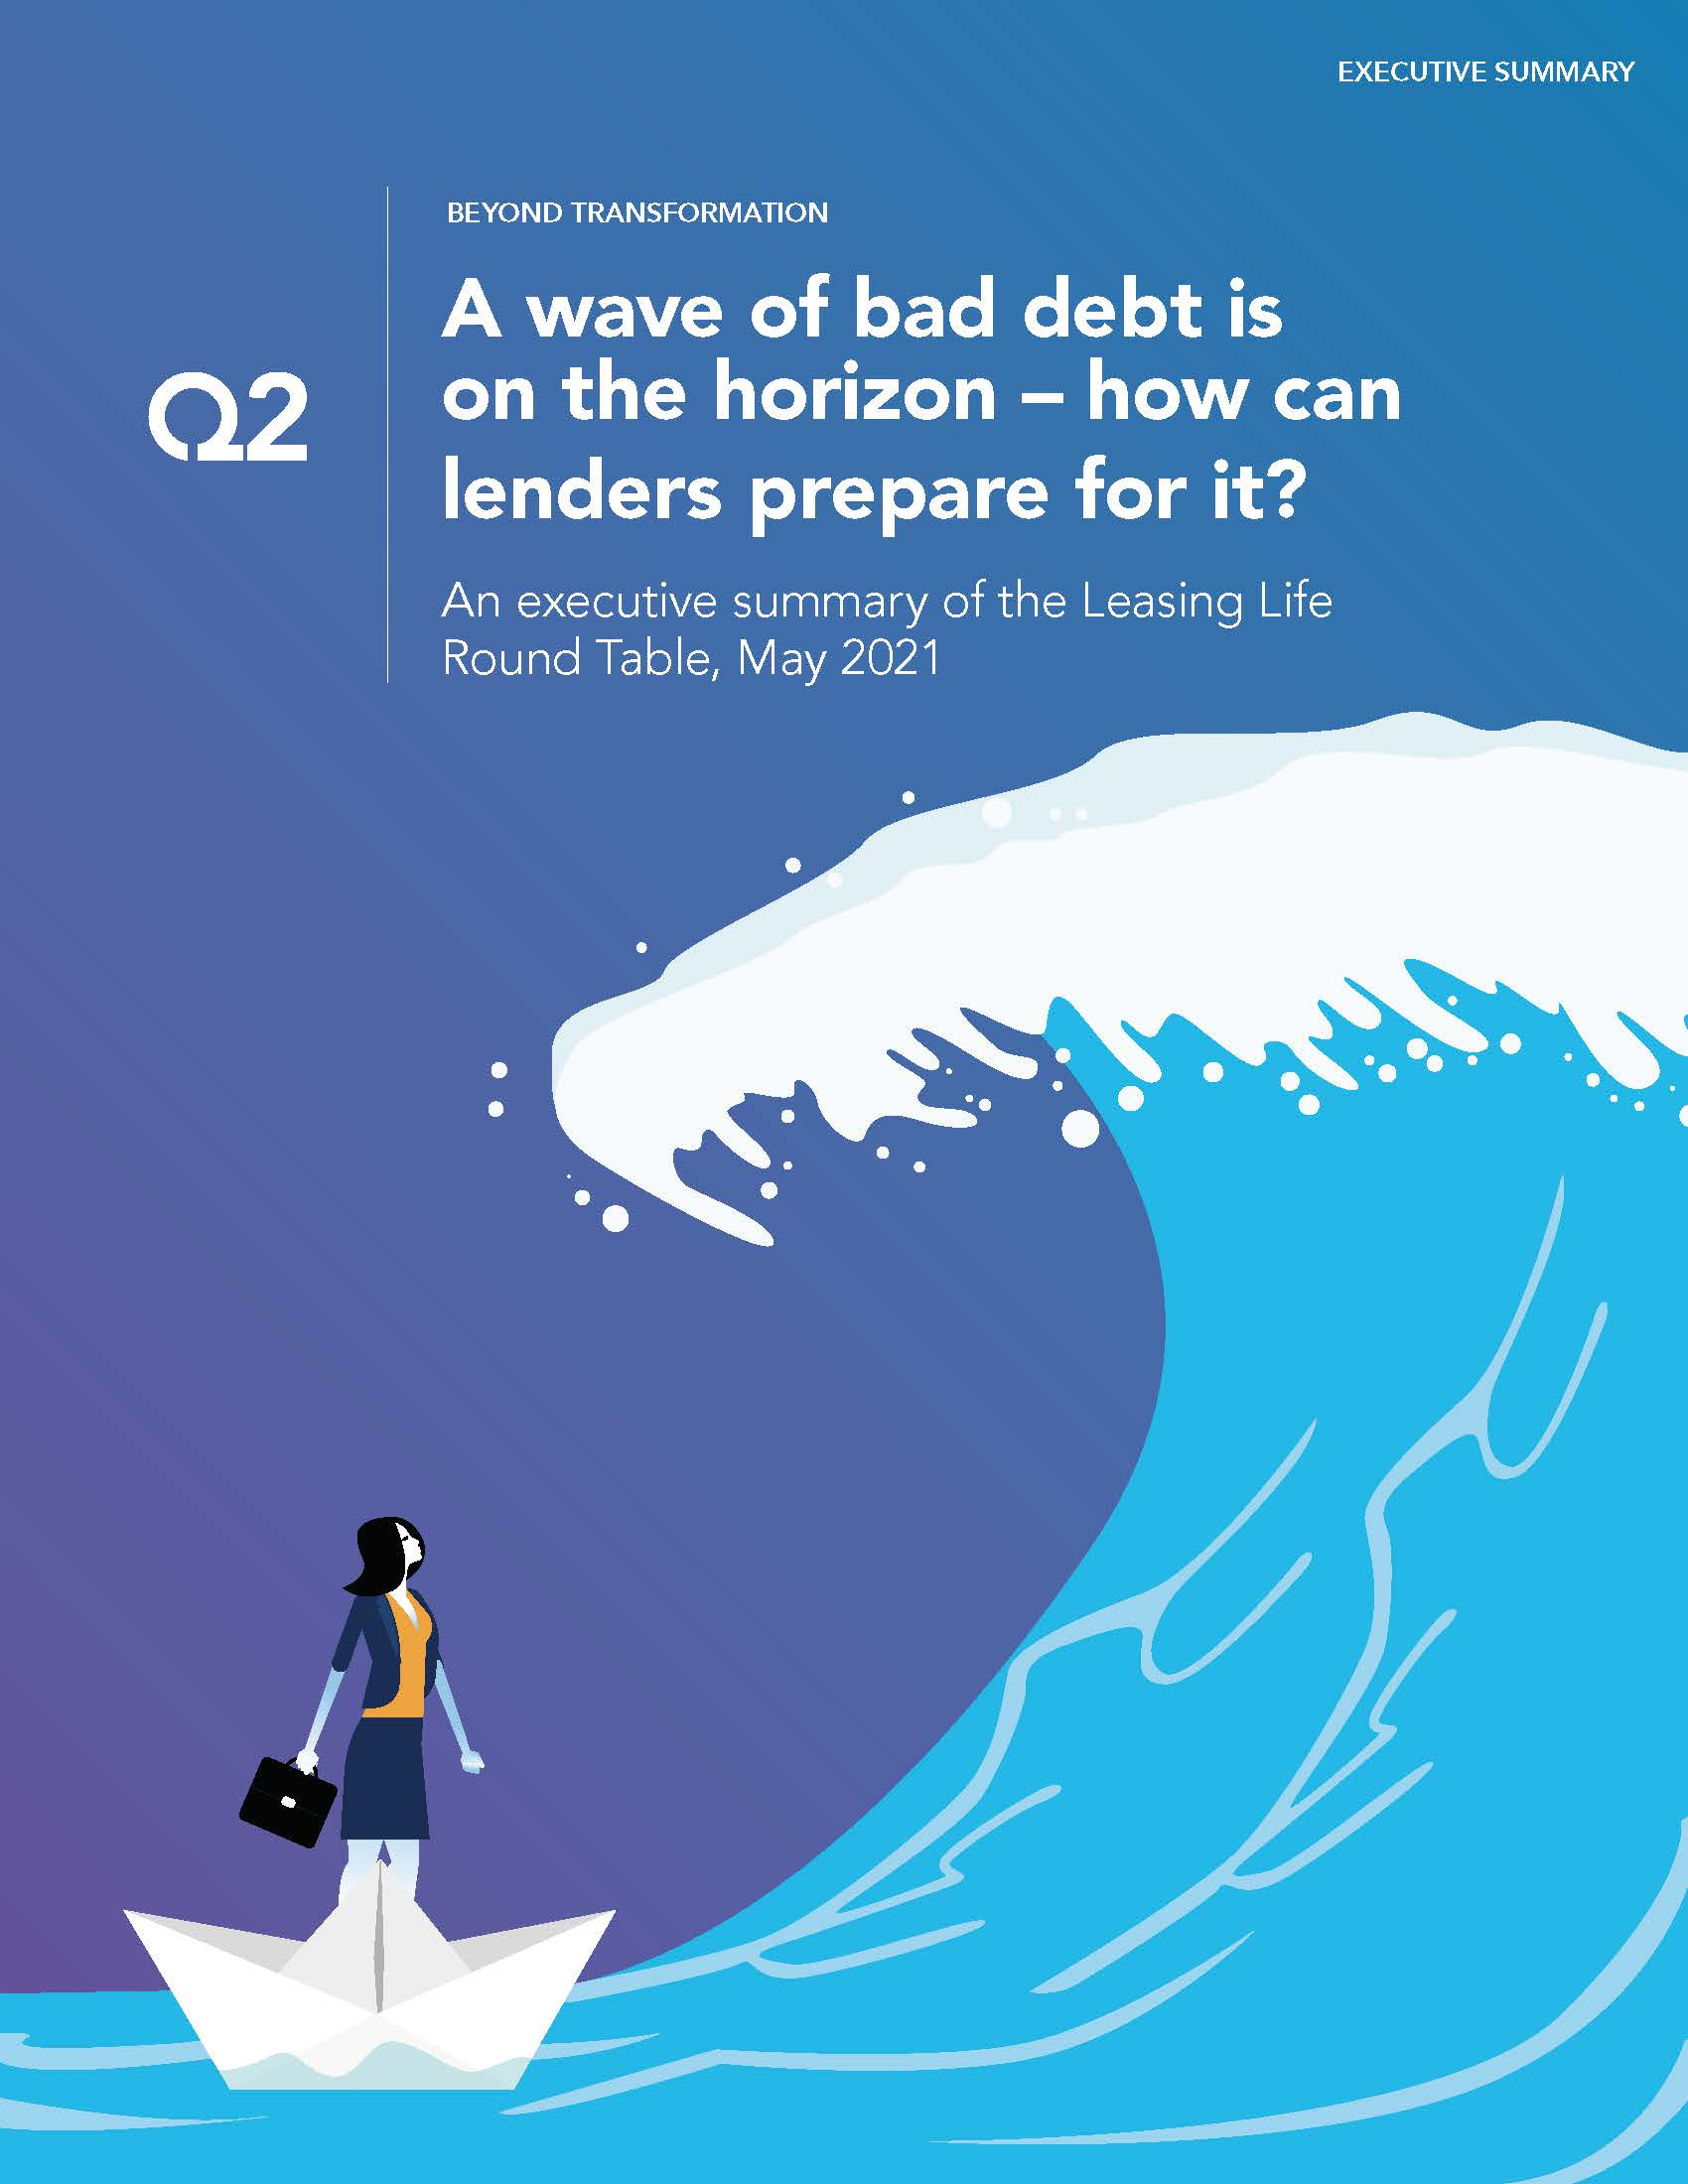 A wave of bad debt is on the horizon thumb - How technology can help manage the high cost of lending